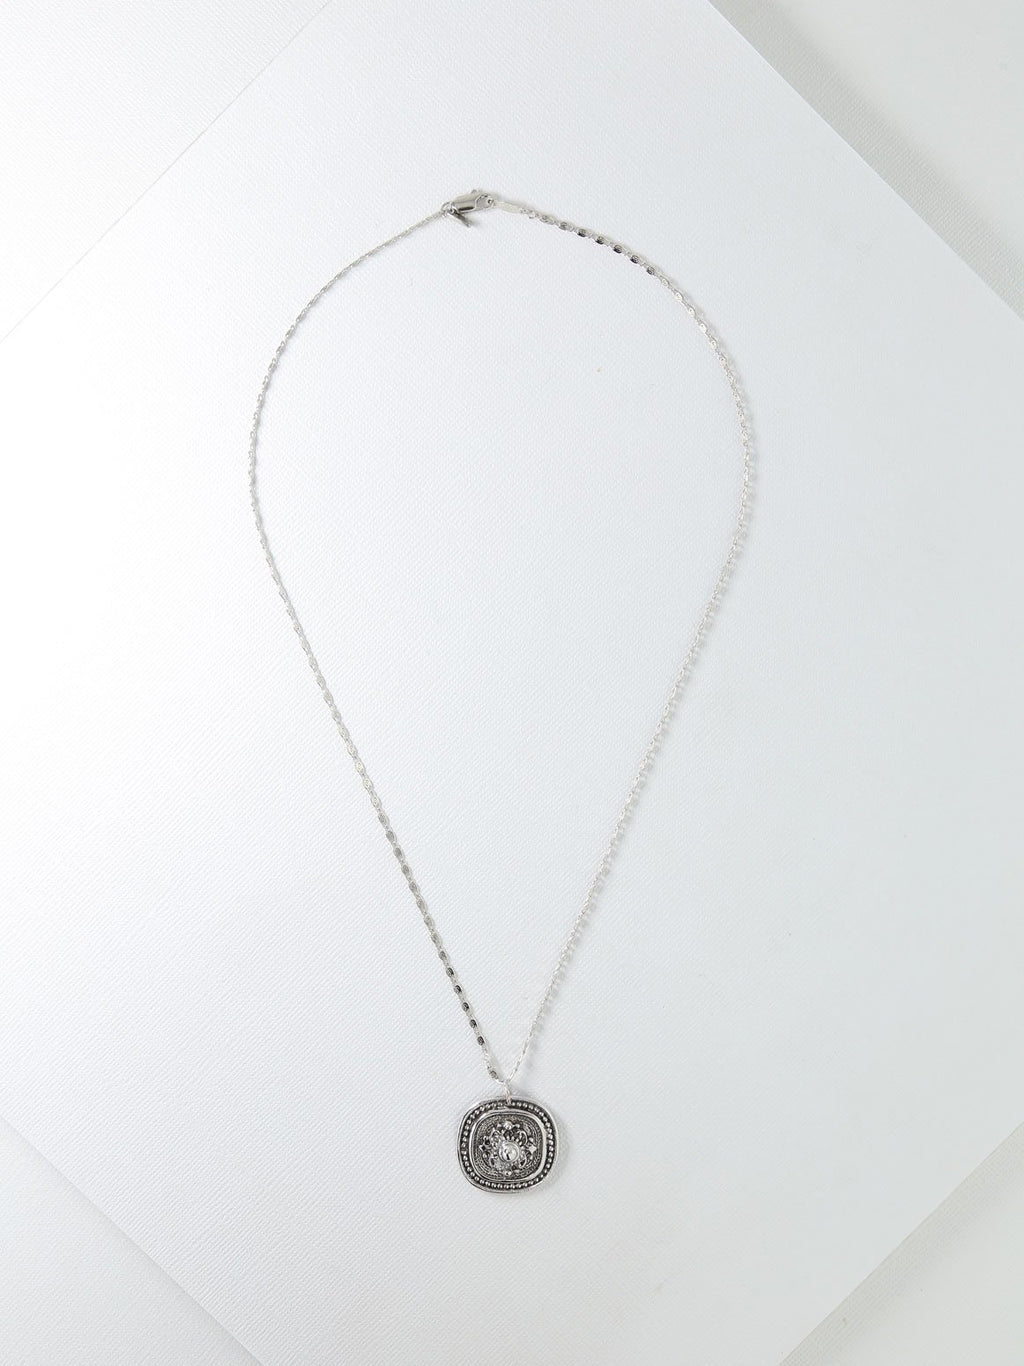 The Harlow Necklace